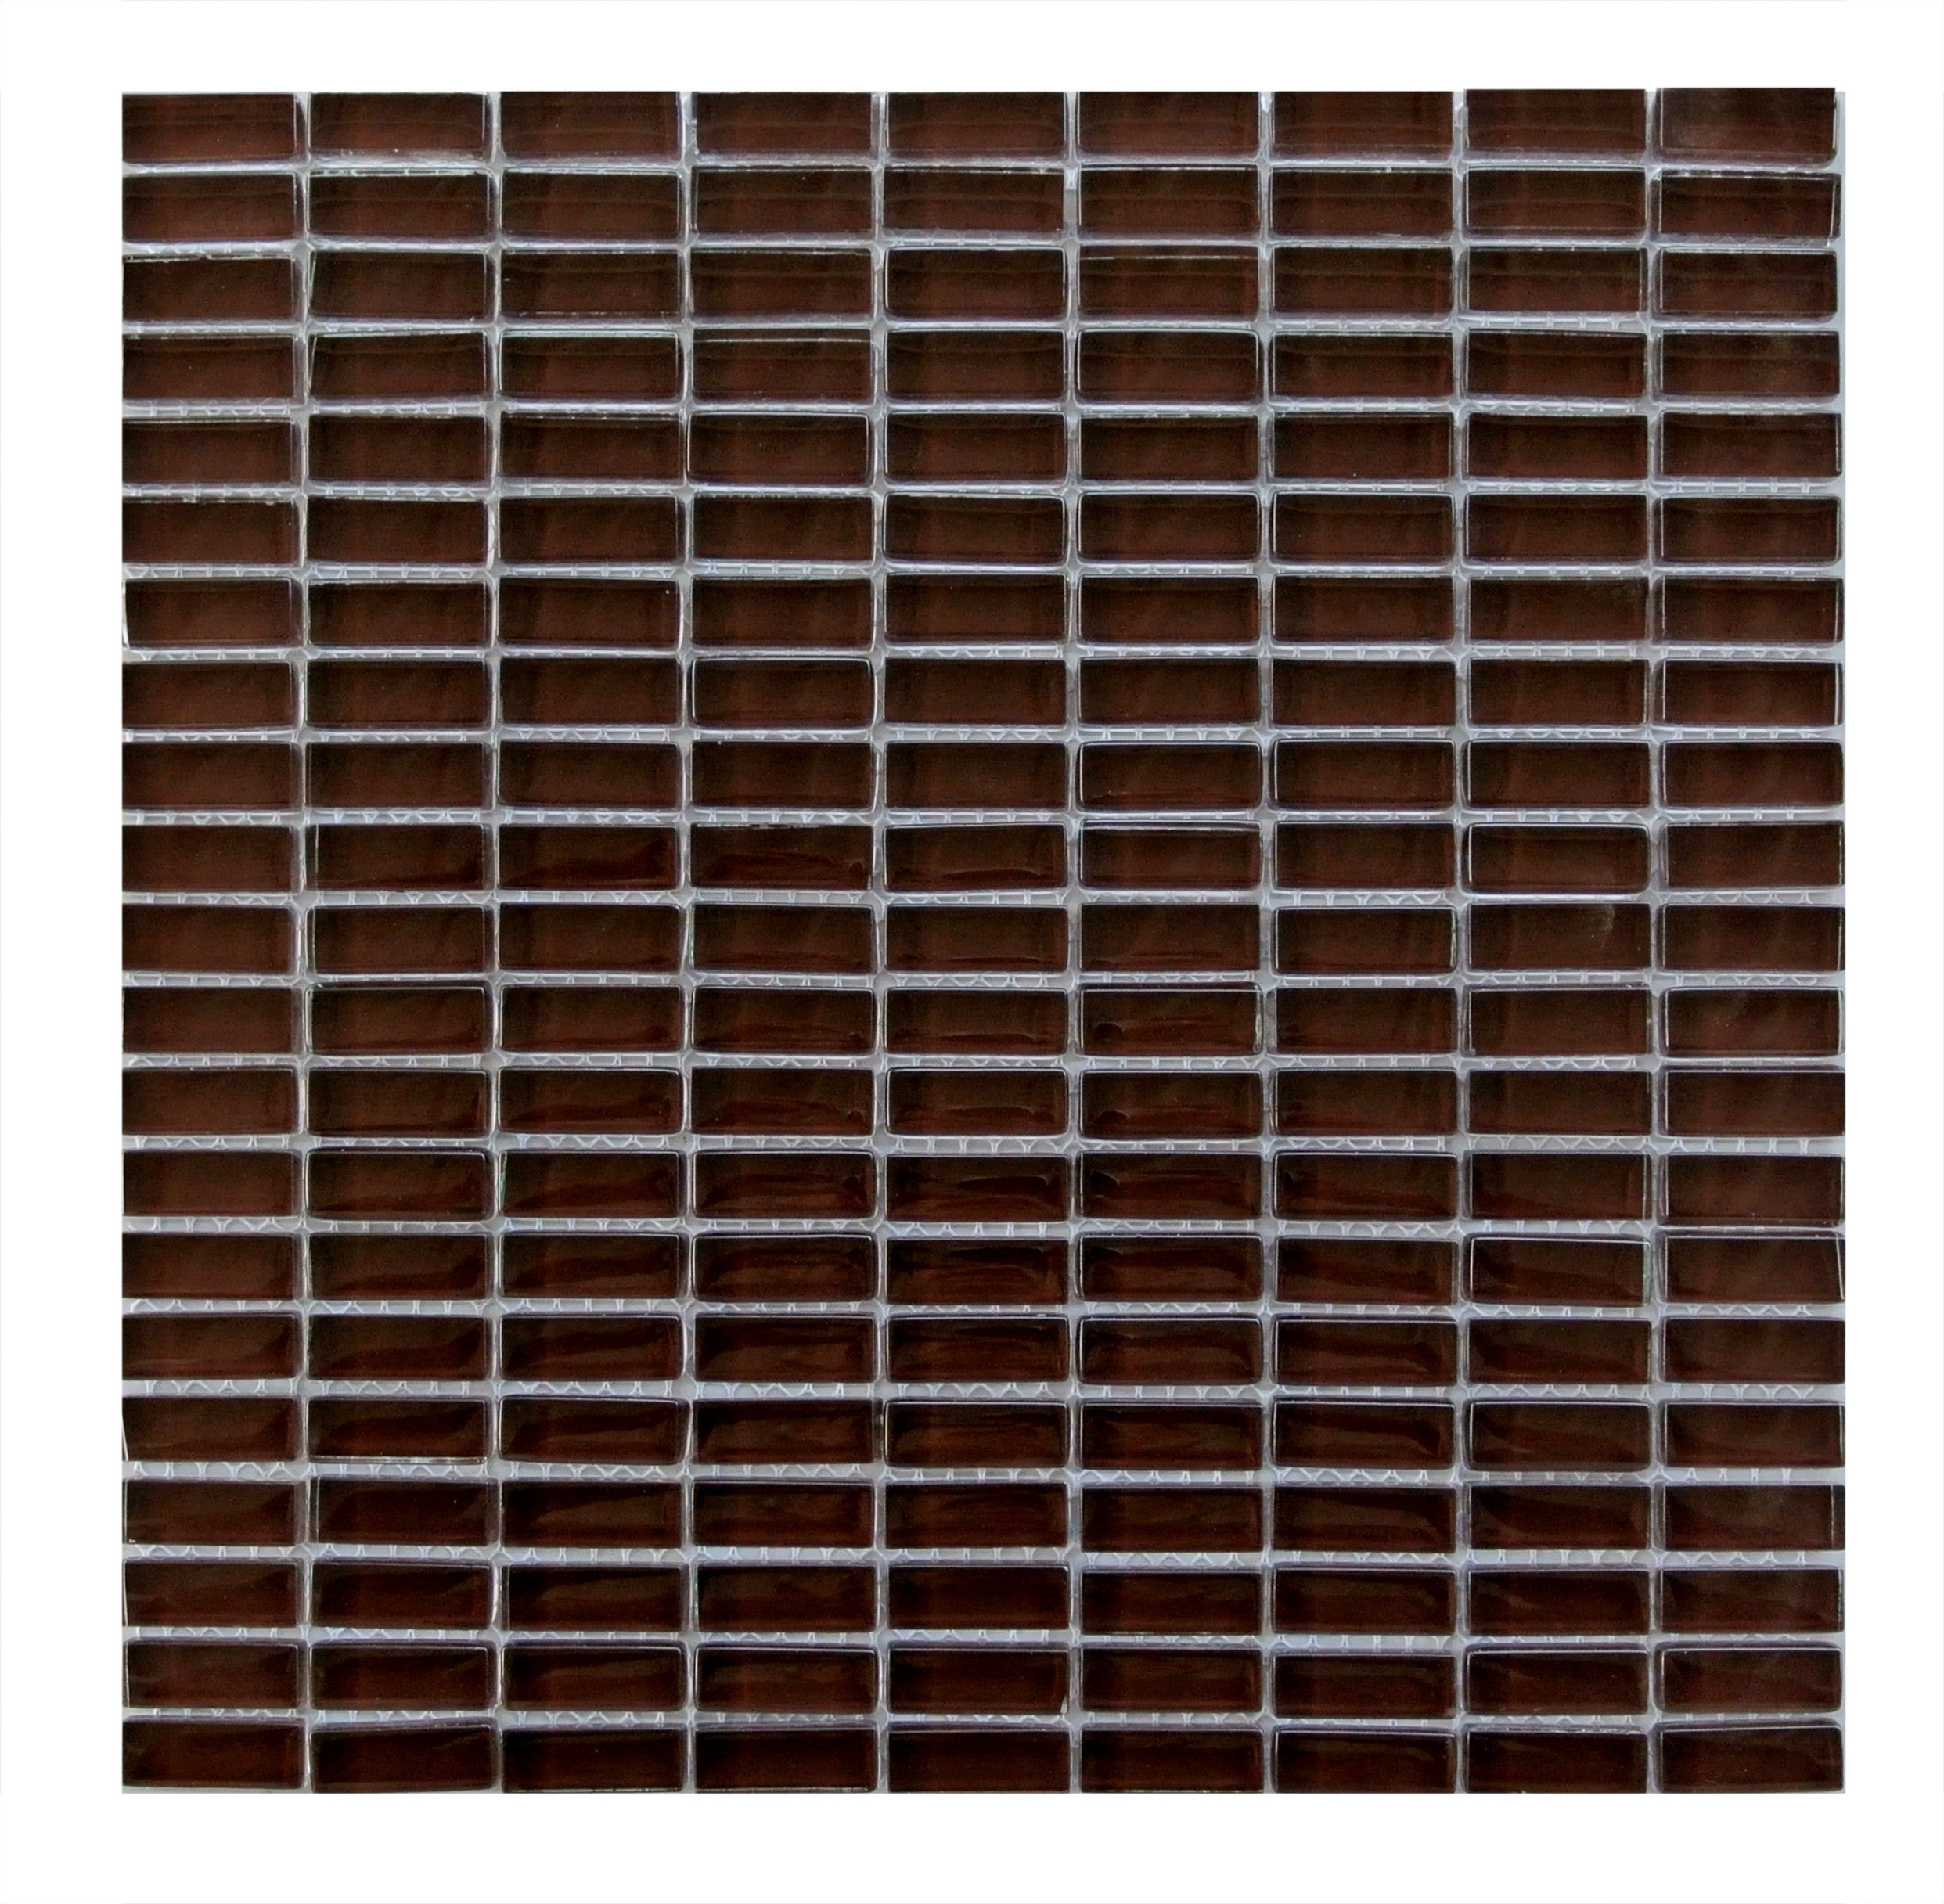 "Epiphany 0.5"" x 1.25"" Glossy Brown Glass Rectangle Backsplash Mosaic Wall Tile"